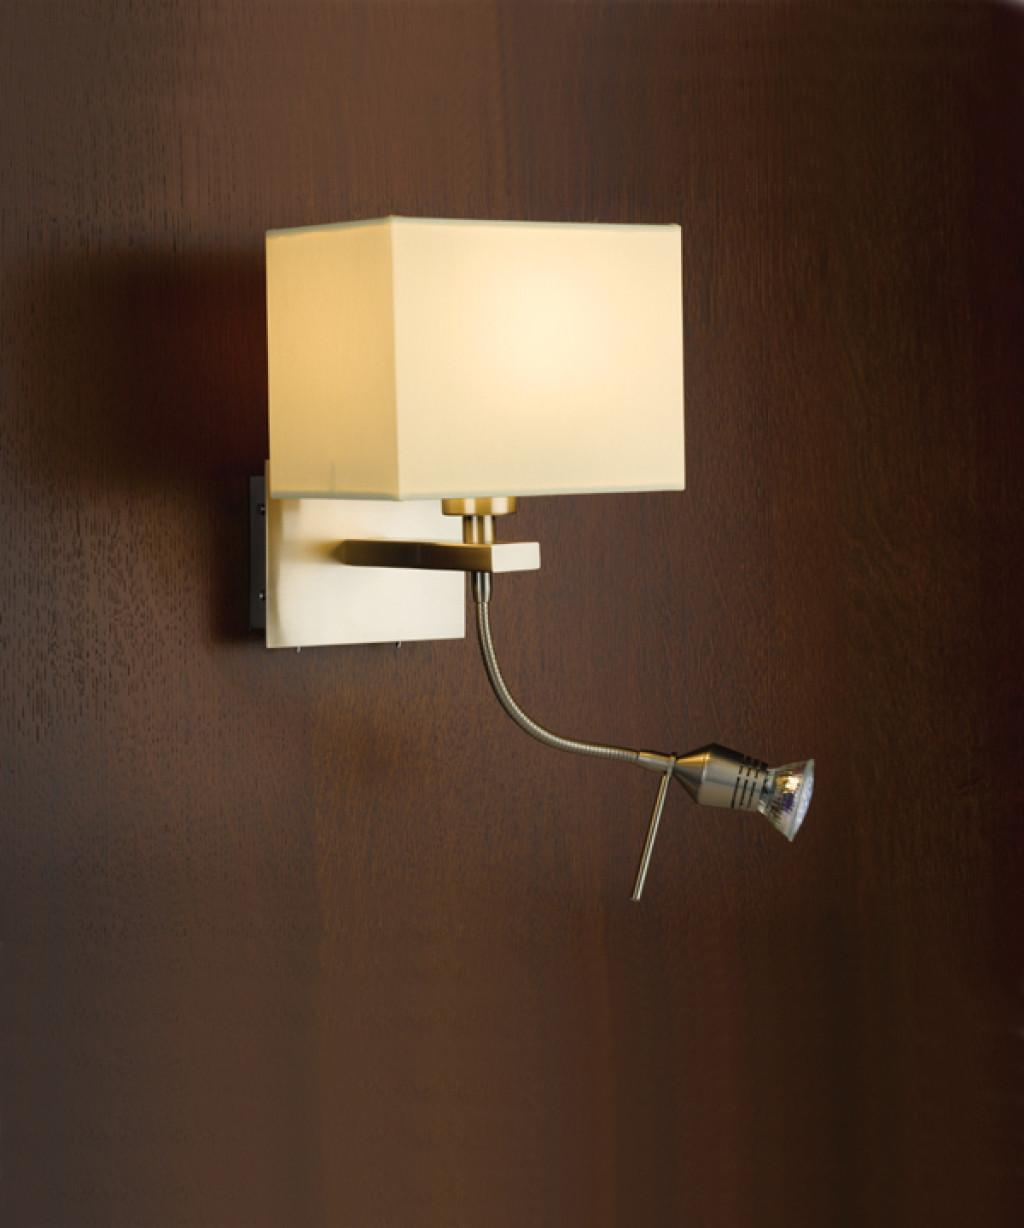 Apartmentsadjustable Arc Sconce Your Lovely Bedroom